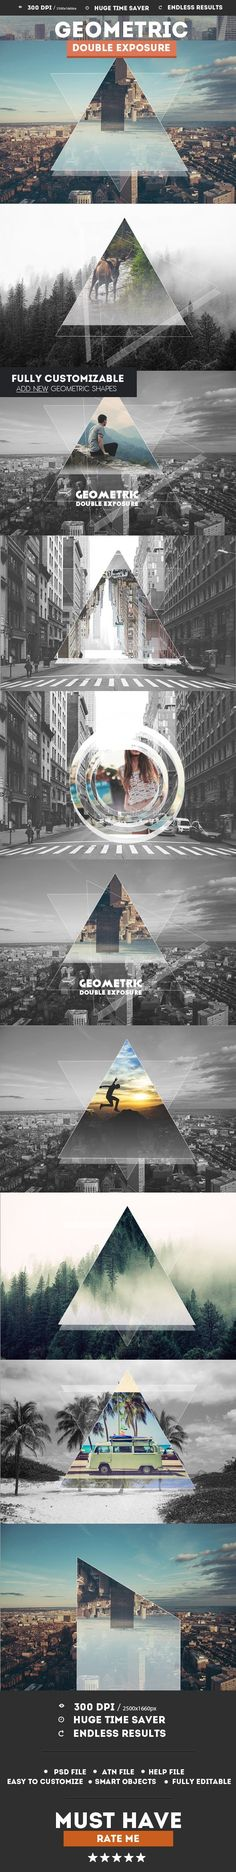 Geometric Double Exposure Photoshop Creator — Layered PSD #abstract geometric collage #double exposure